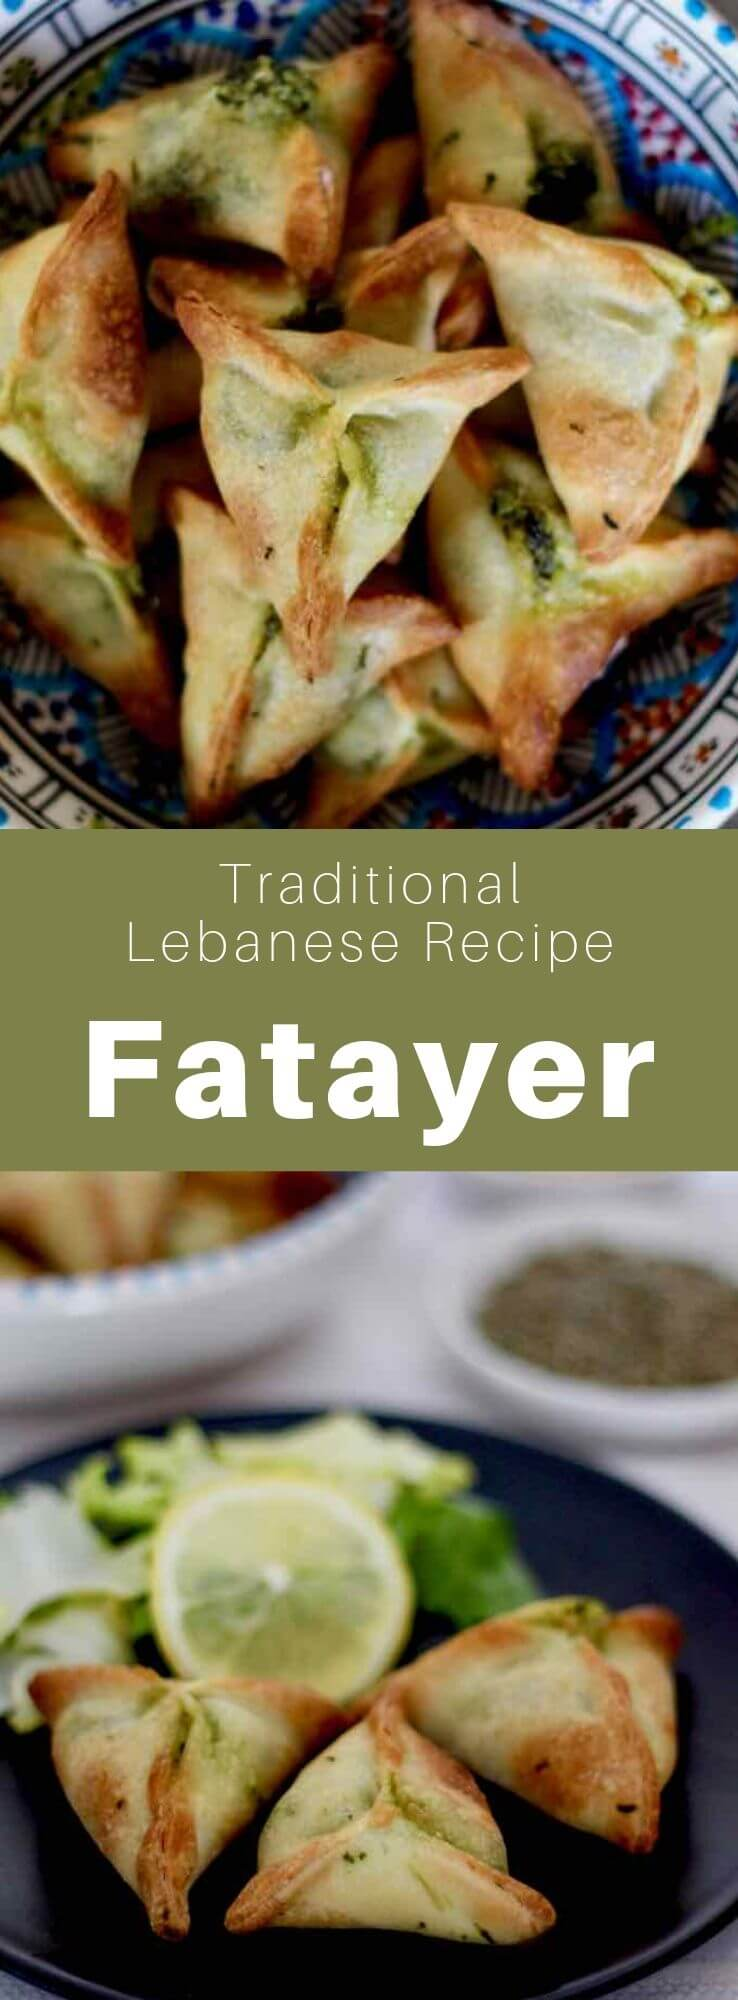 Fatayer (or fitiir) is a traditional Lebanese mezze that consists in a spinach stuffed turnover, also popular in Turkey and Middle Eastern countries. #Lebanon #LebaneseFood #LebaneseCuisine #LebaneseRecipe #LevantineCuisine #LevantineRecipe #LevantineFood #WorldCuisine #196flavors